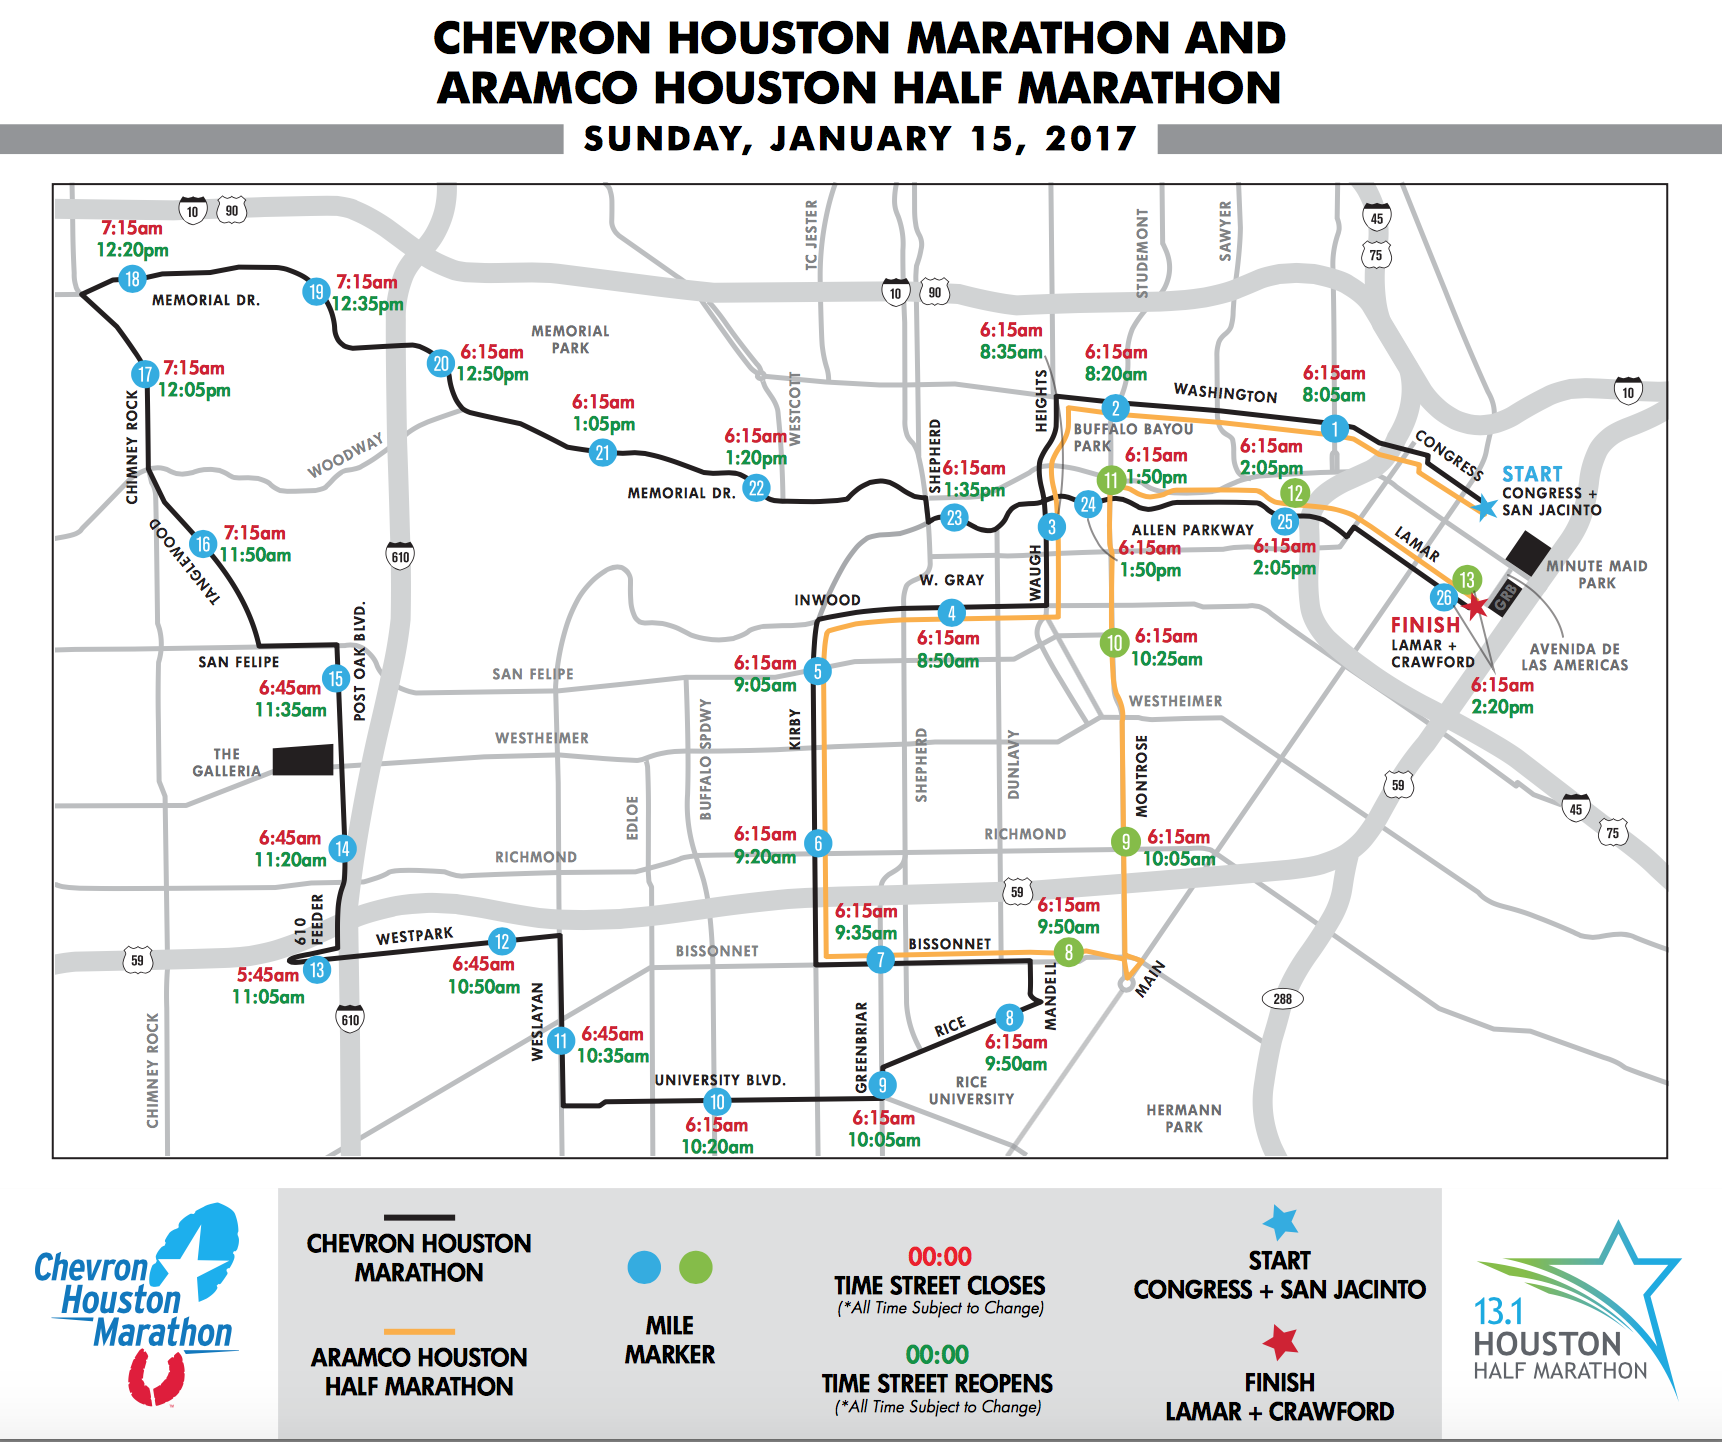 Street Closures For The Chevron Houston Marathon – Houston Public on texas road closures map, scdot road closures map, modot road closures map,